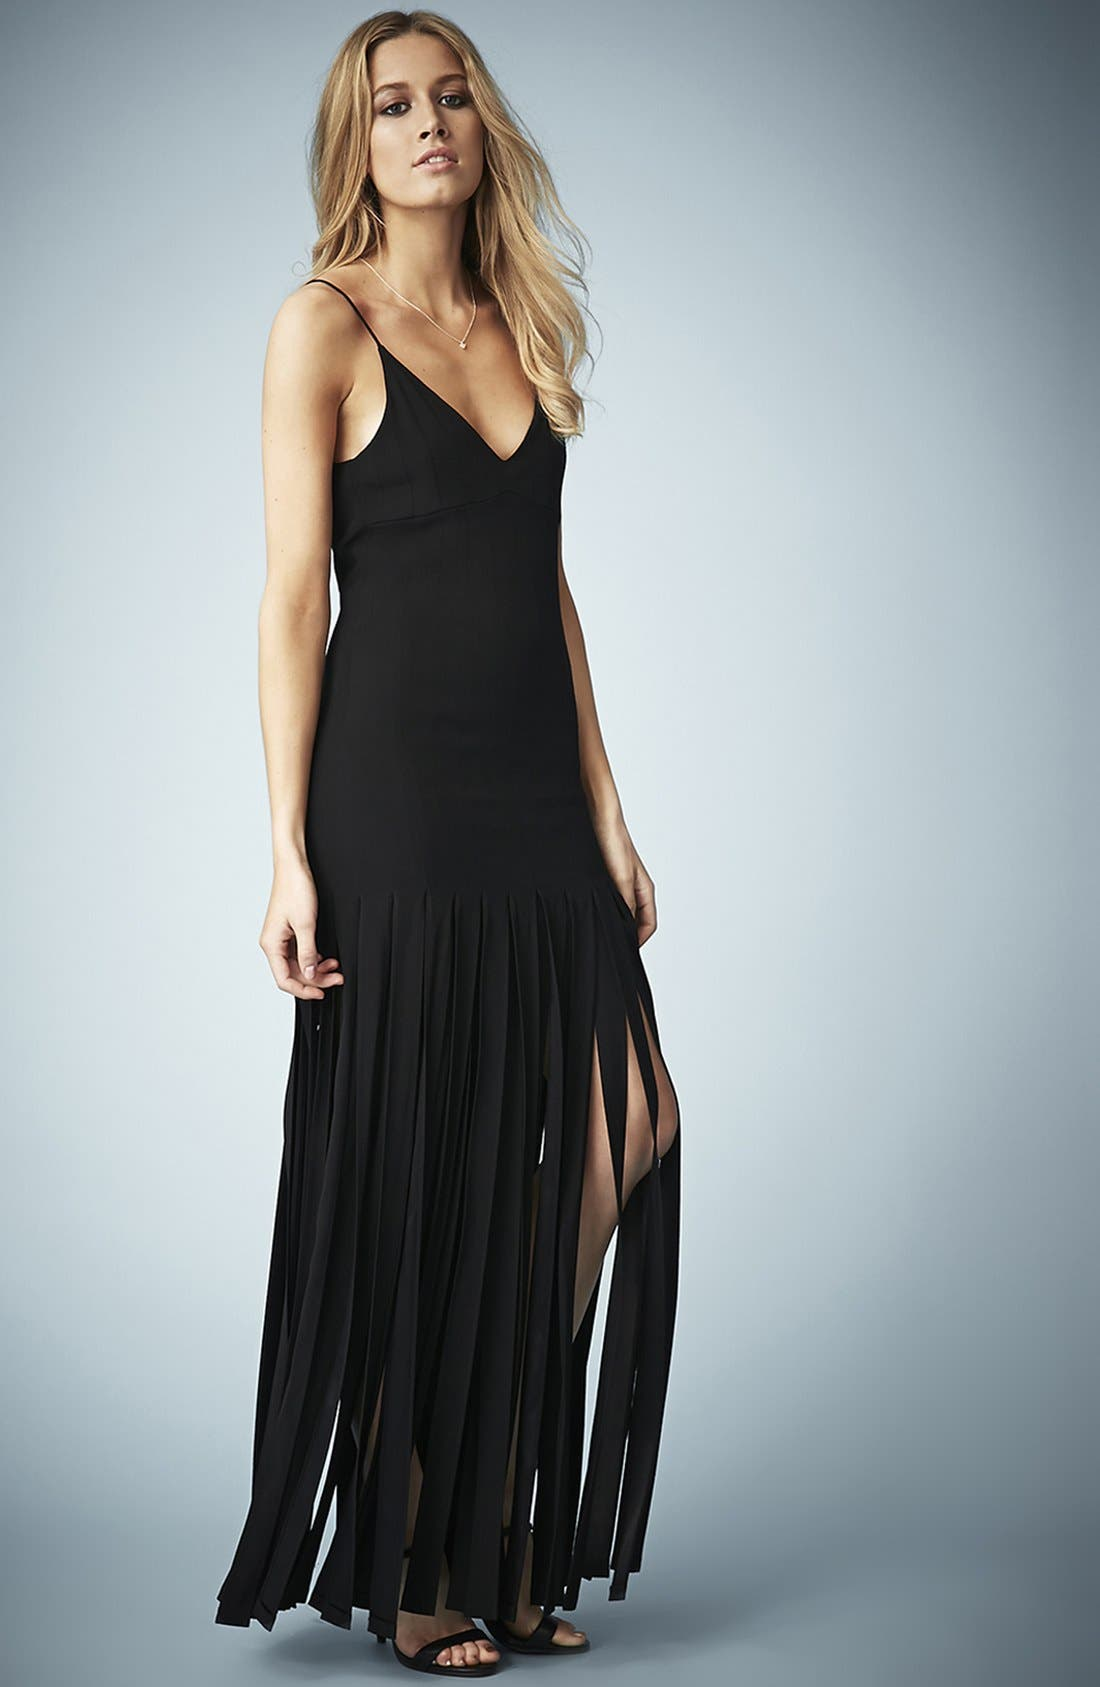 Kate Moss for Topshop Splice Skirt Maxi Dress,                             Main thumbnail 1, color,